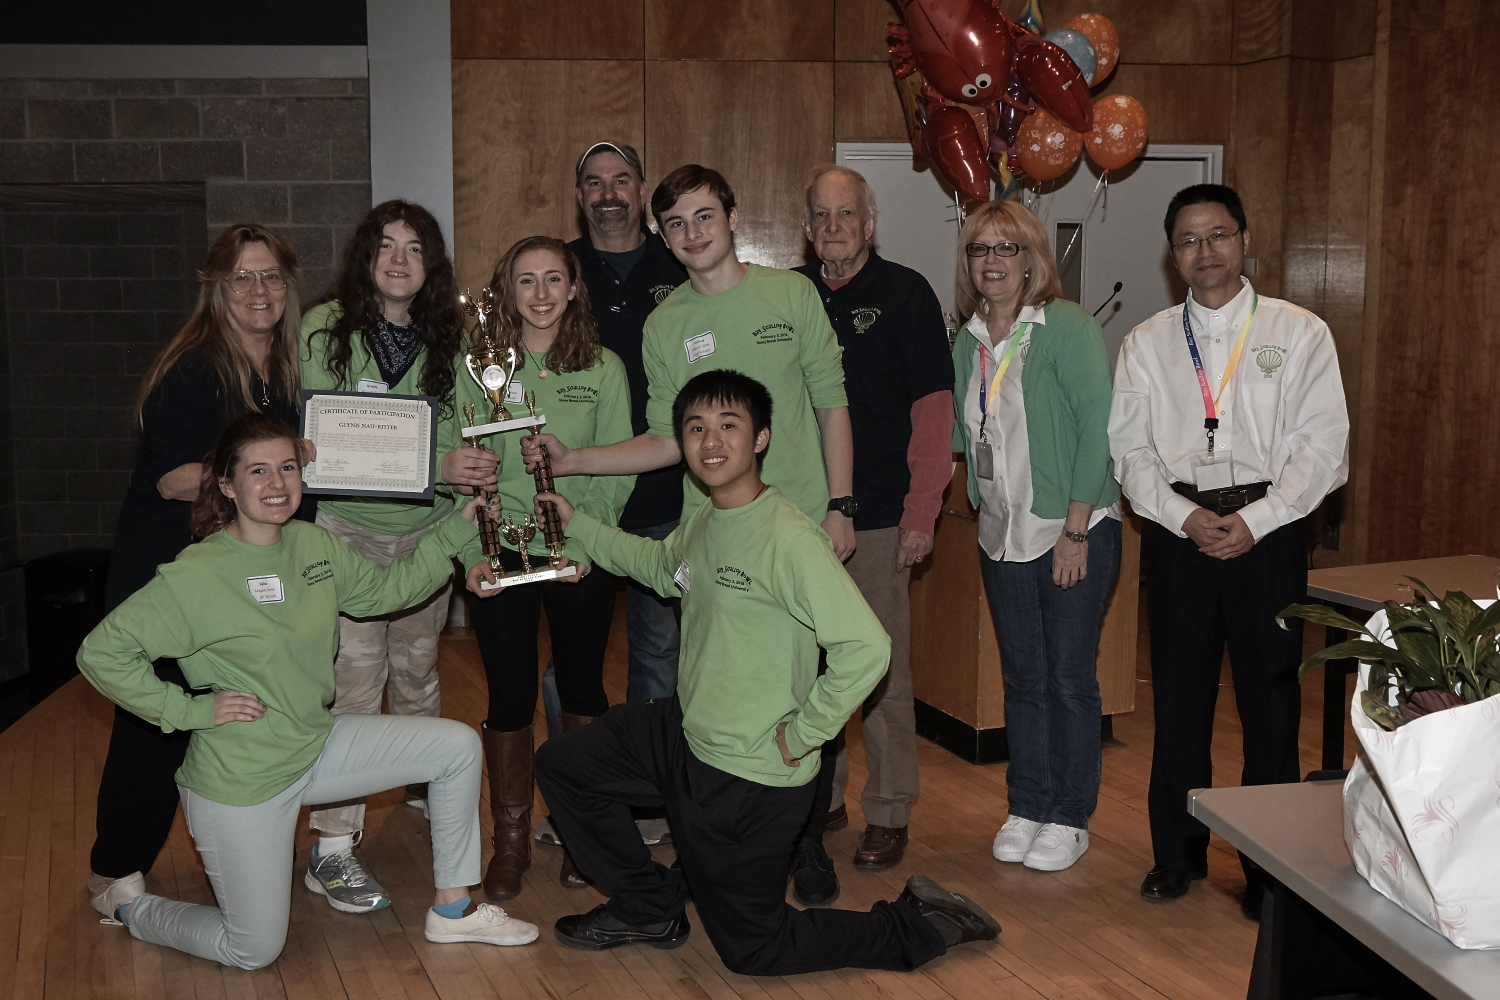 The 2018 Bay Scallop Bowl Winners - Mount Sinai High School.  Back row - left to right - Coach, Glynis Nau-Ritter, Arielle Mule, Clare Dana, Assistant Coach Andrew Matthews, Joshua Goodman, SoMAS Interim Dean Larry Swanson, Coordinators Kim Knoll and Ping Liu. Front row - left to right - Julia McElheron, Johnathan Yu